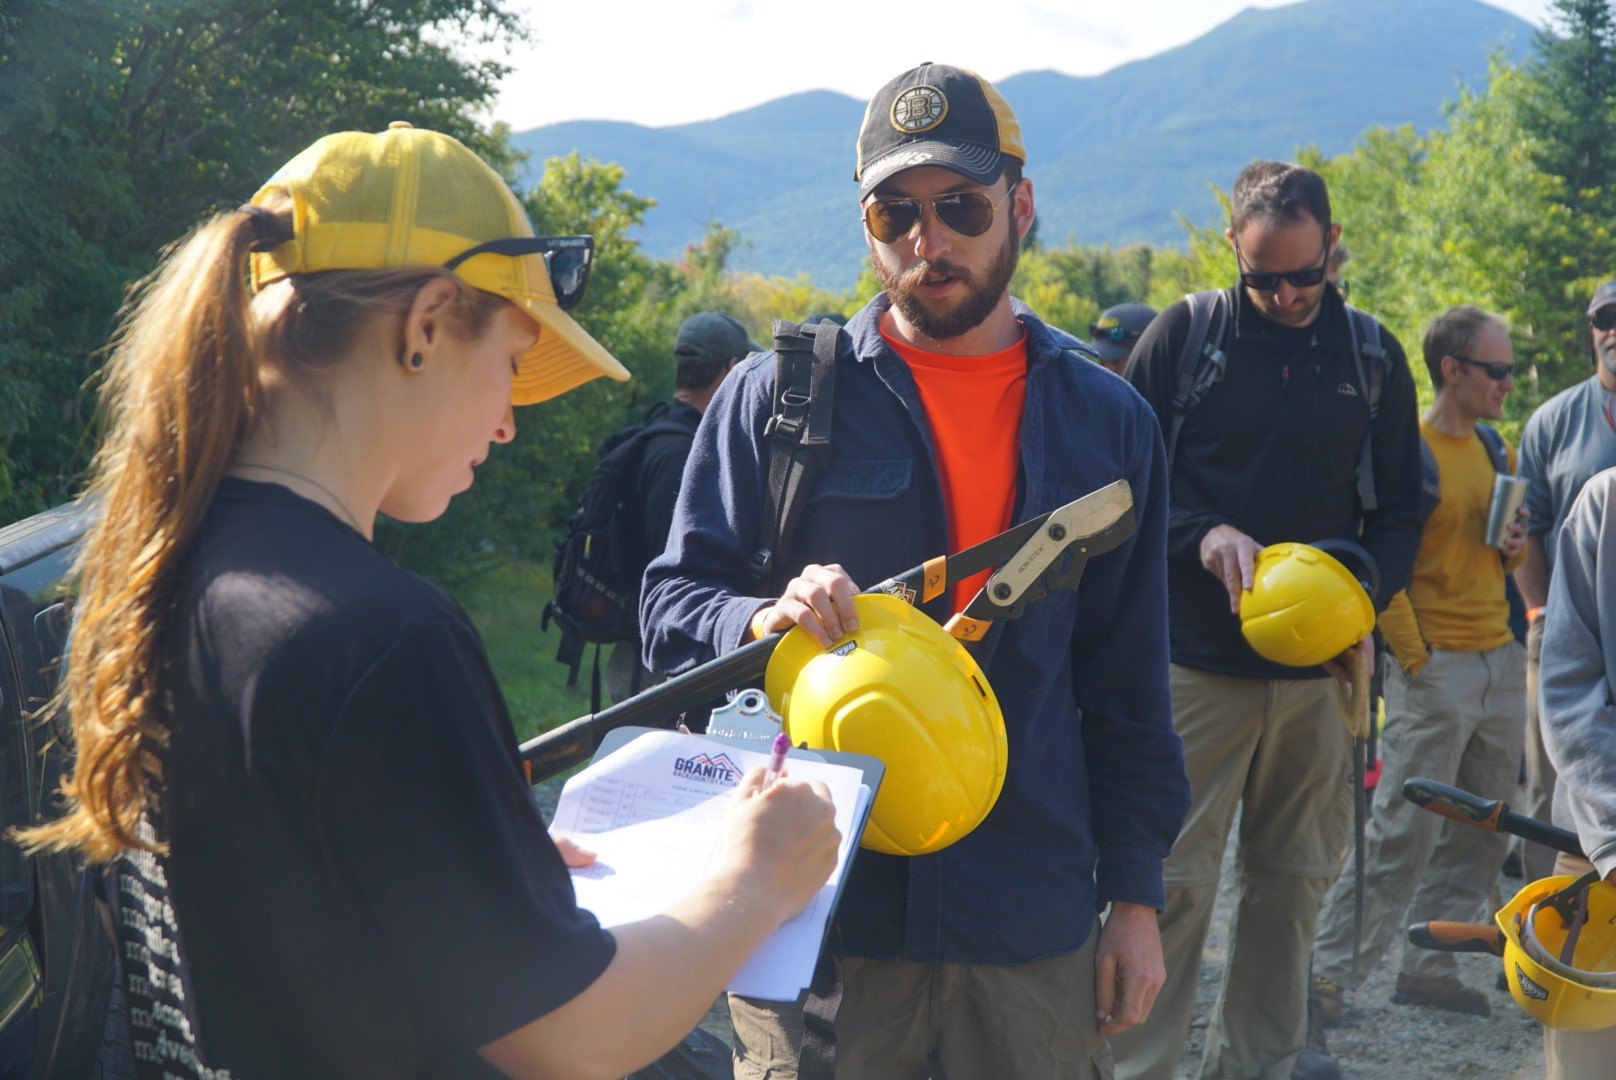 Sherburne + Gulf of Slides Trail Work - Project Type: Trail WorkStatus: APPROVEDLevel: FEDERALDate: June 23rdTime: 8am - 4pmLocation: Pinkham Notch Visitor CenterContact: GBARSVP: TBDVolunteer Waiver: TBD